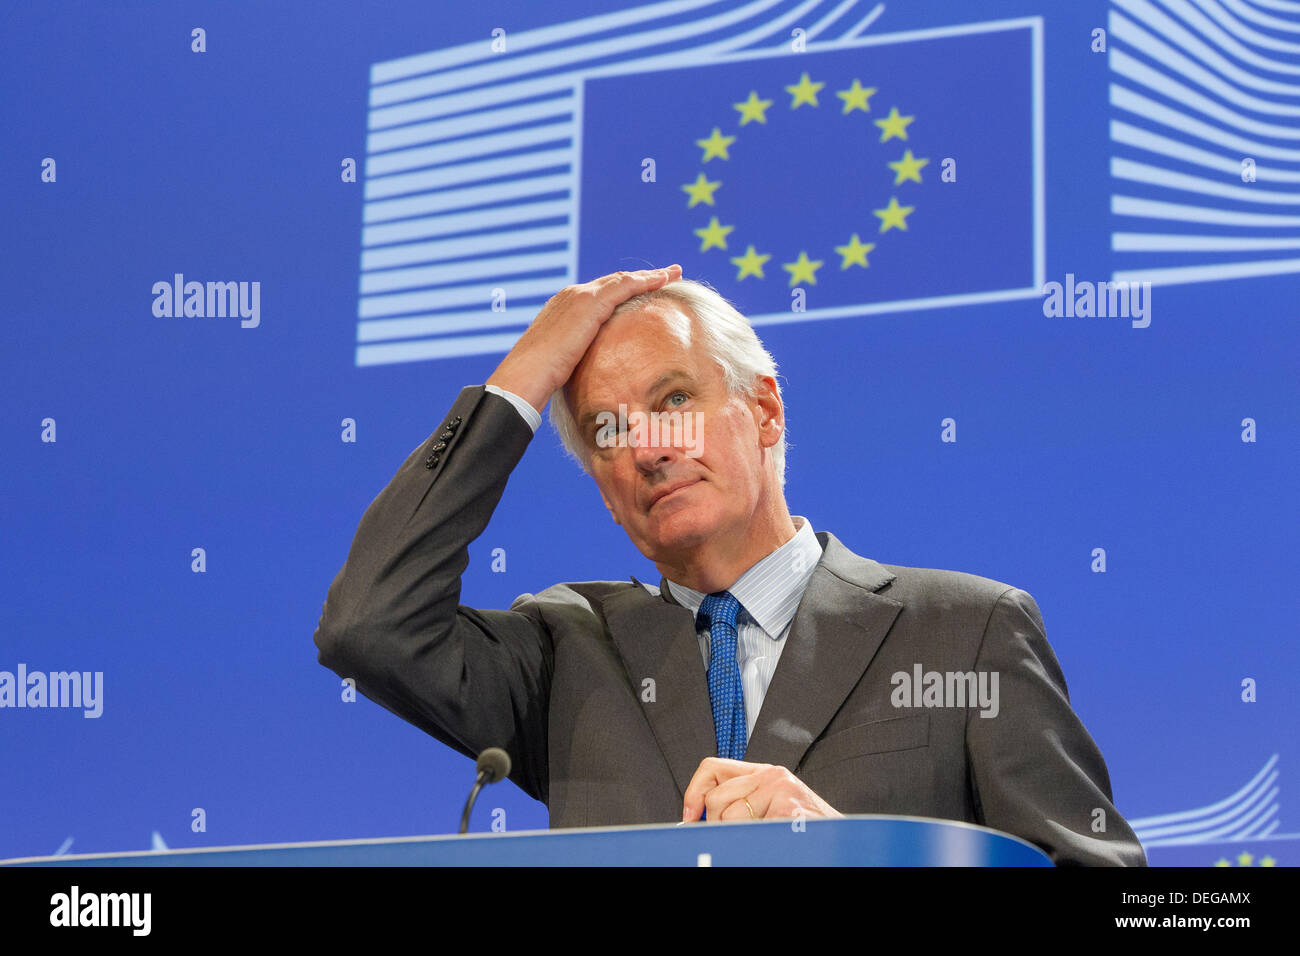 Michel Barnier, Brexit negotiator, EU Commissioner for Internal Market and Services - Stock Image